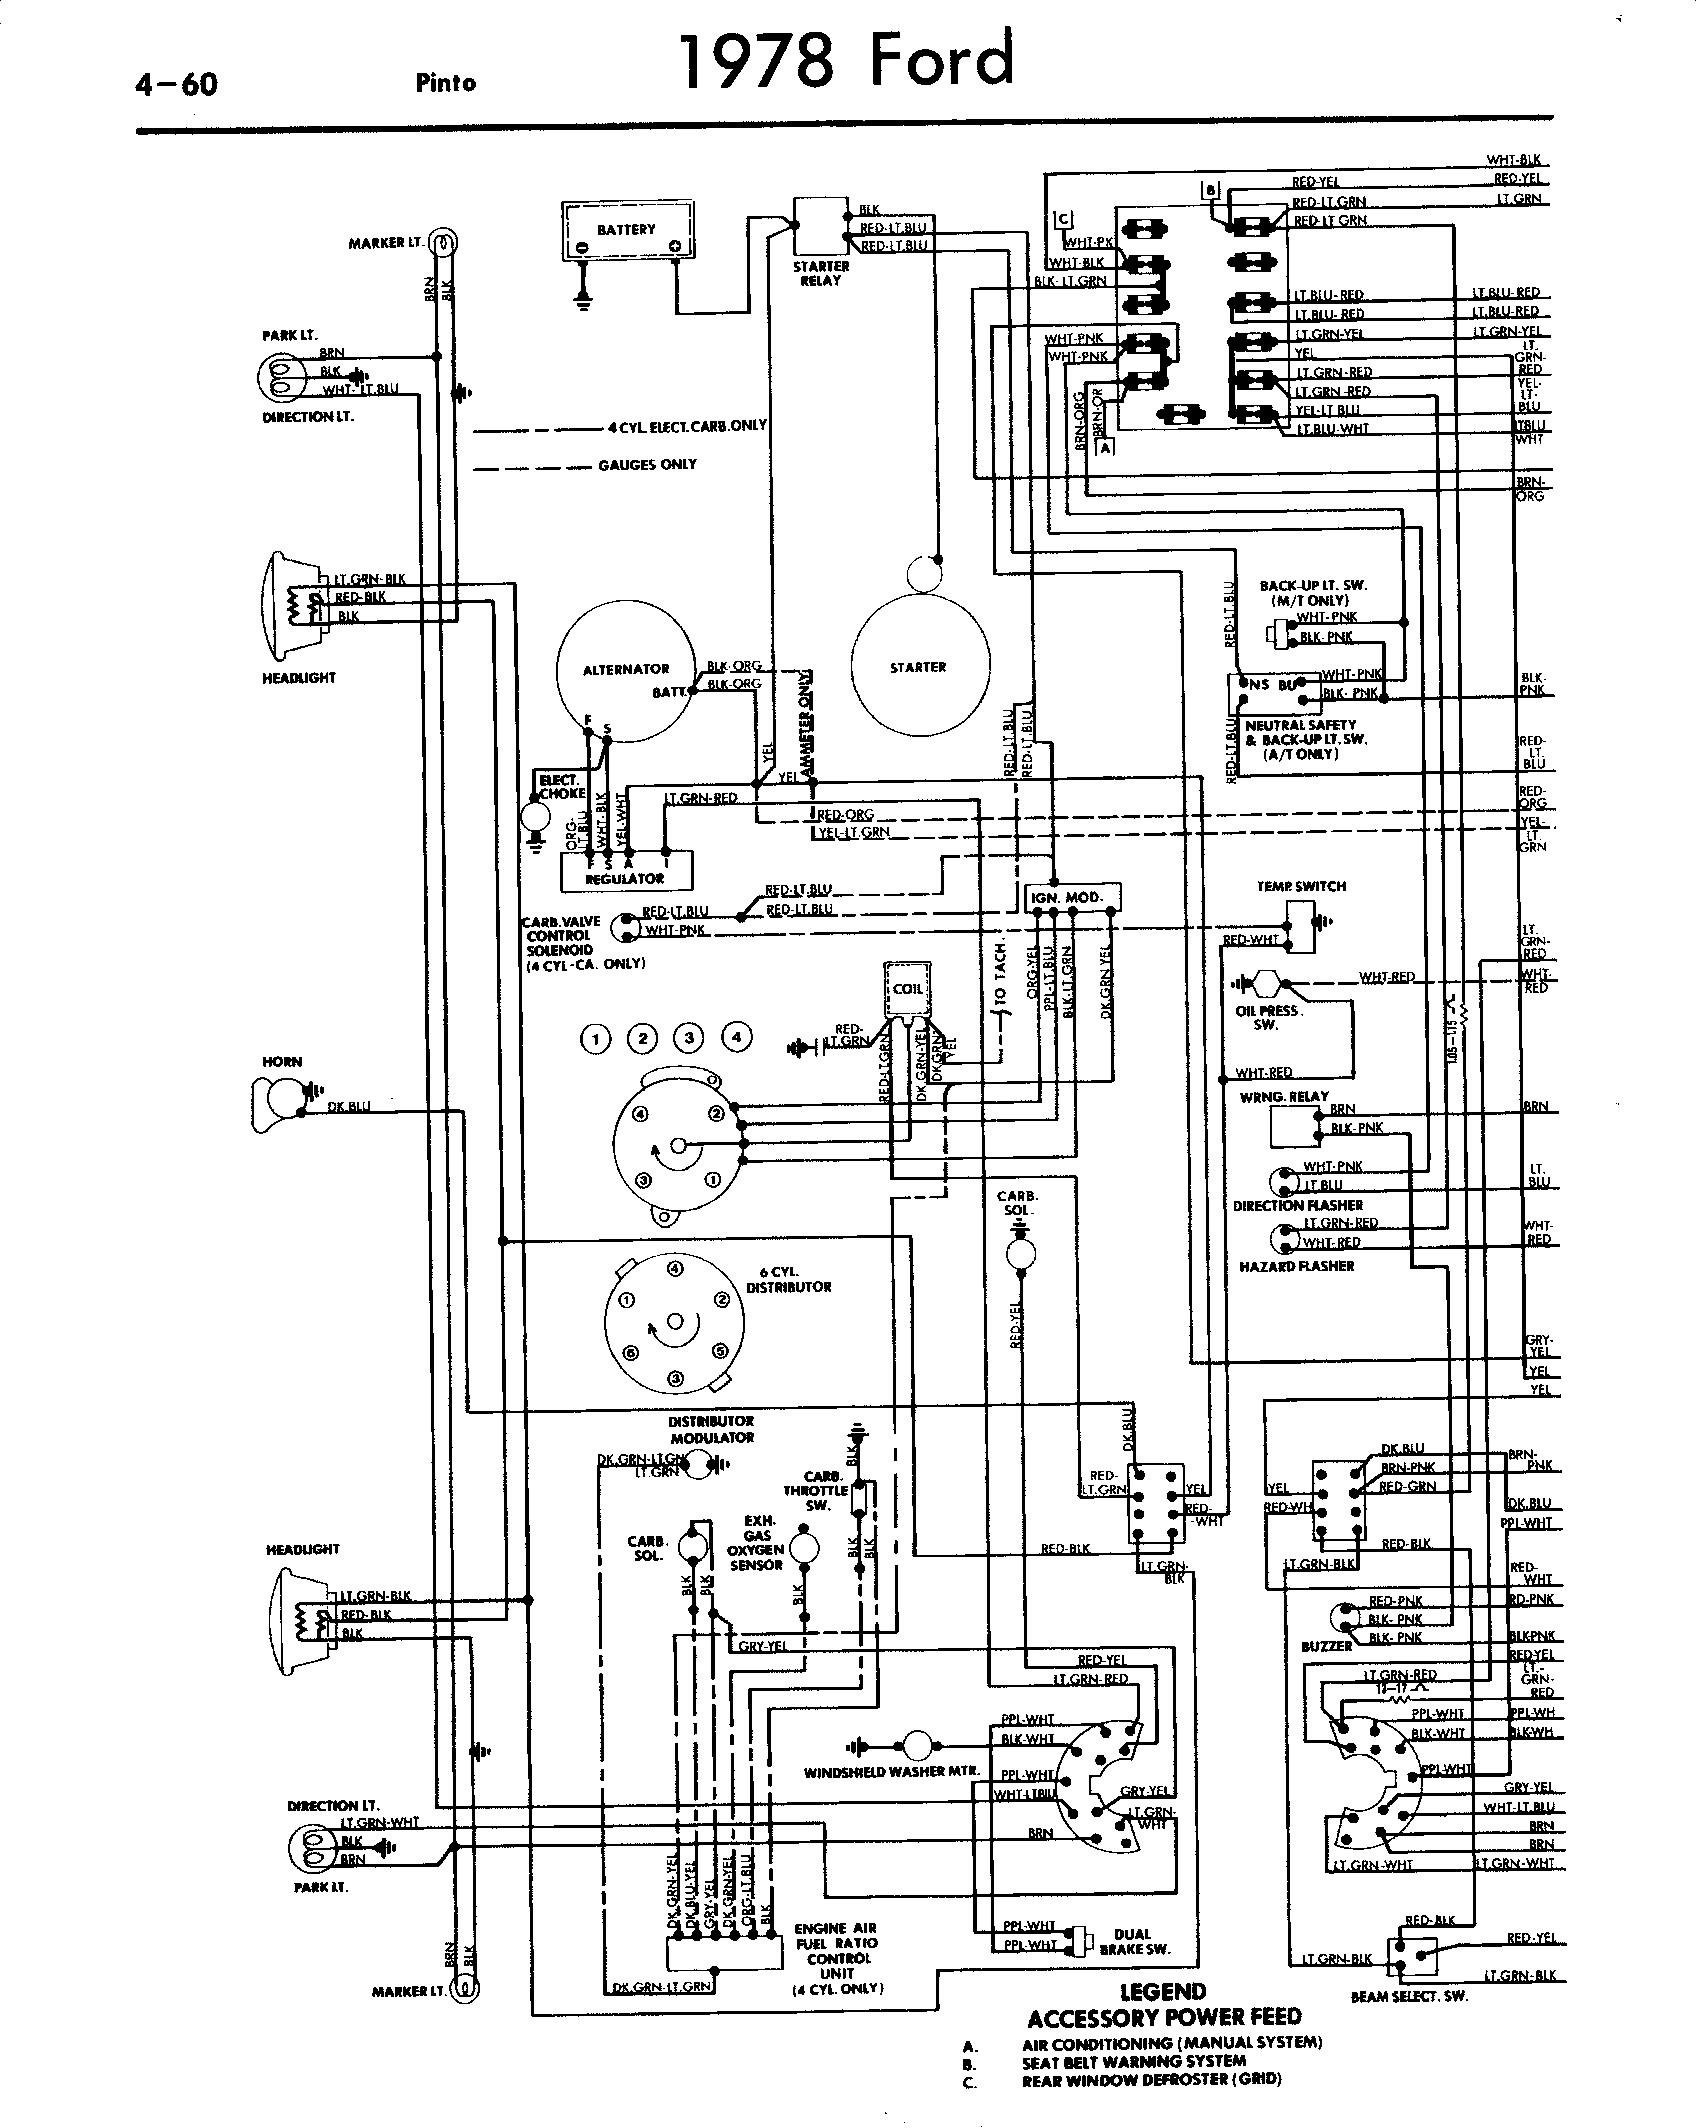 Ford Mustang Engine Diagram